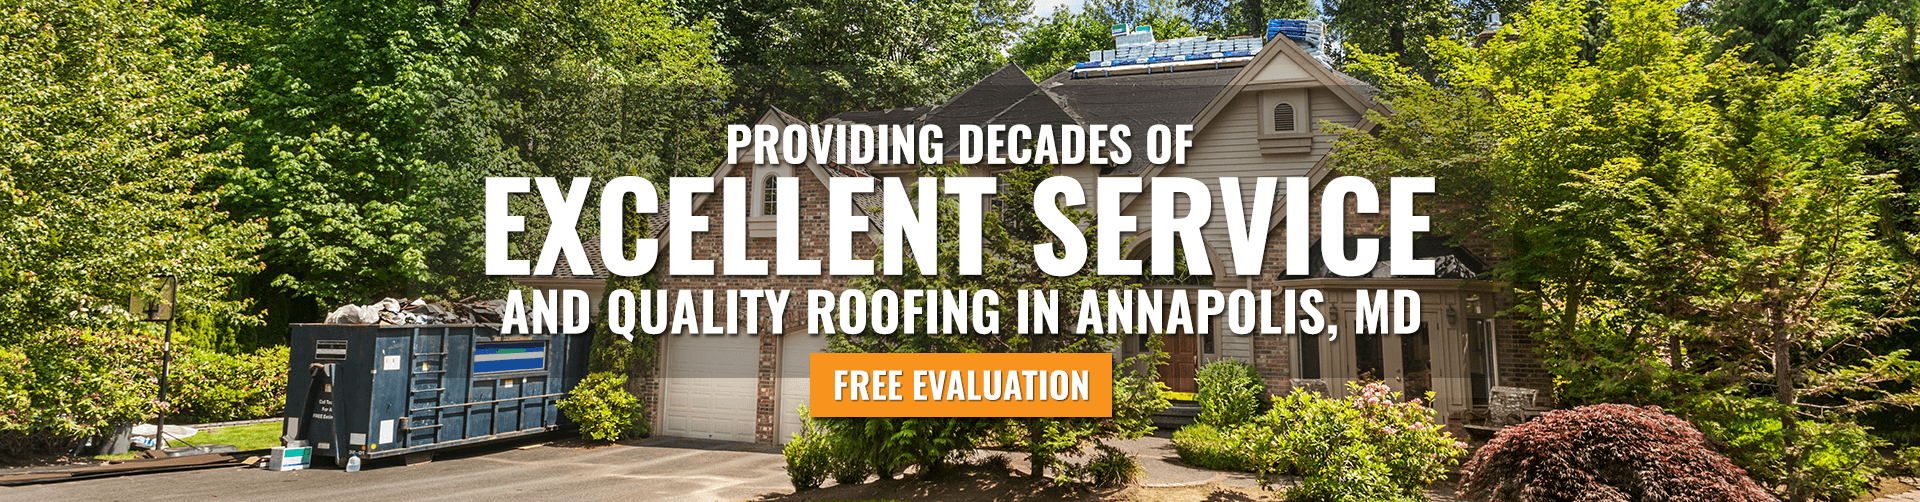 Customer Service and Quality Roofing